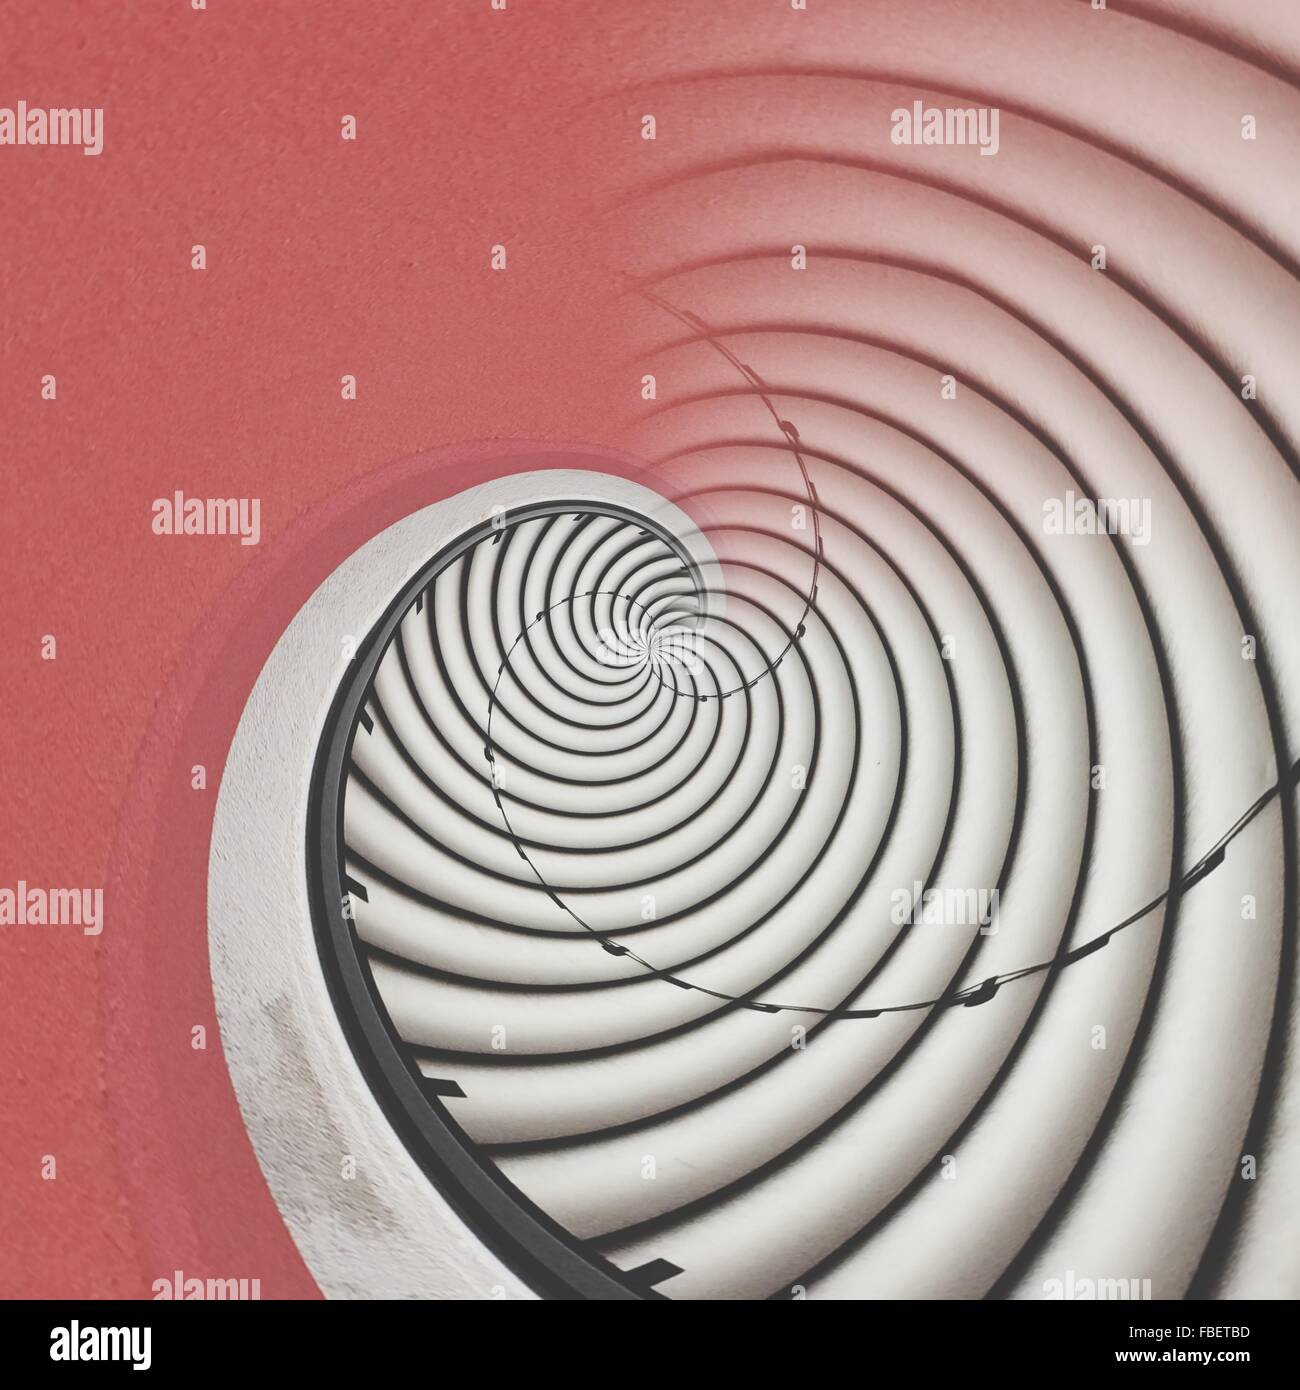 Digital Composite Of Spiral Staircases - Stock Image